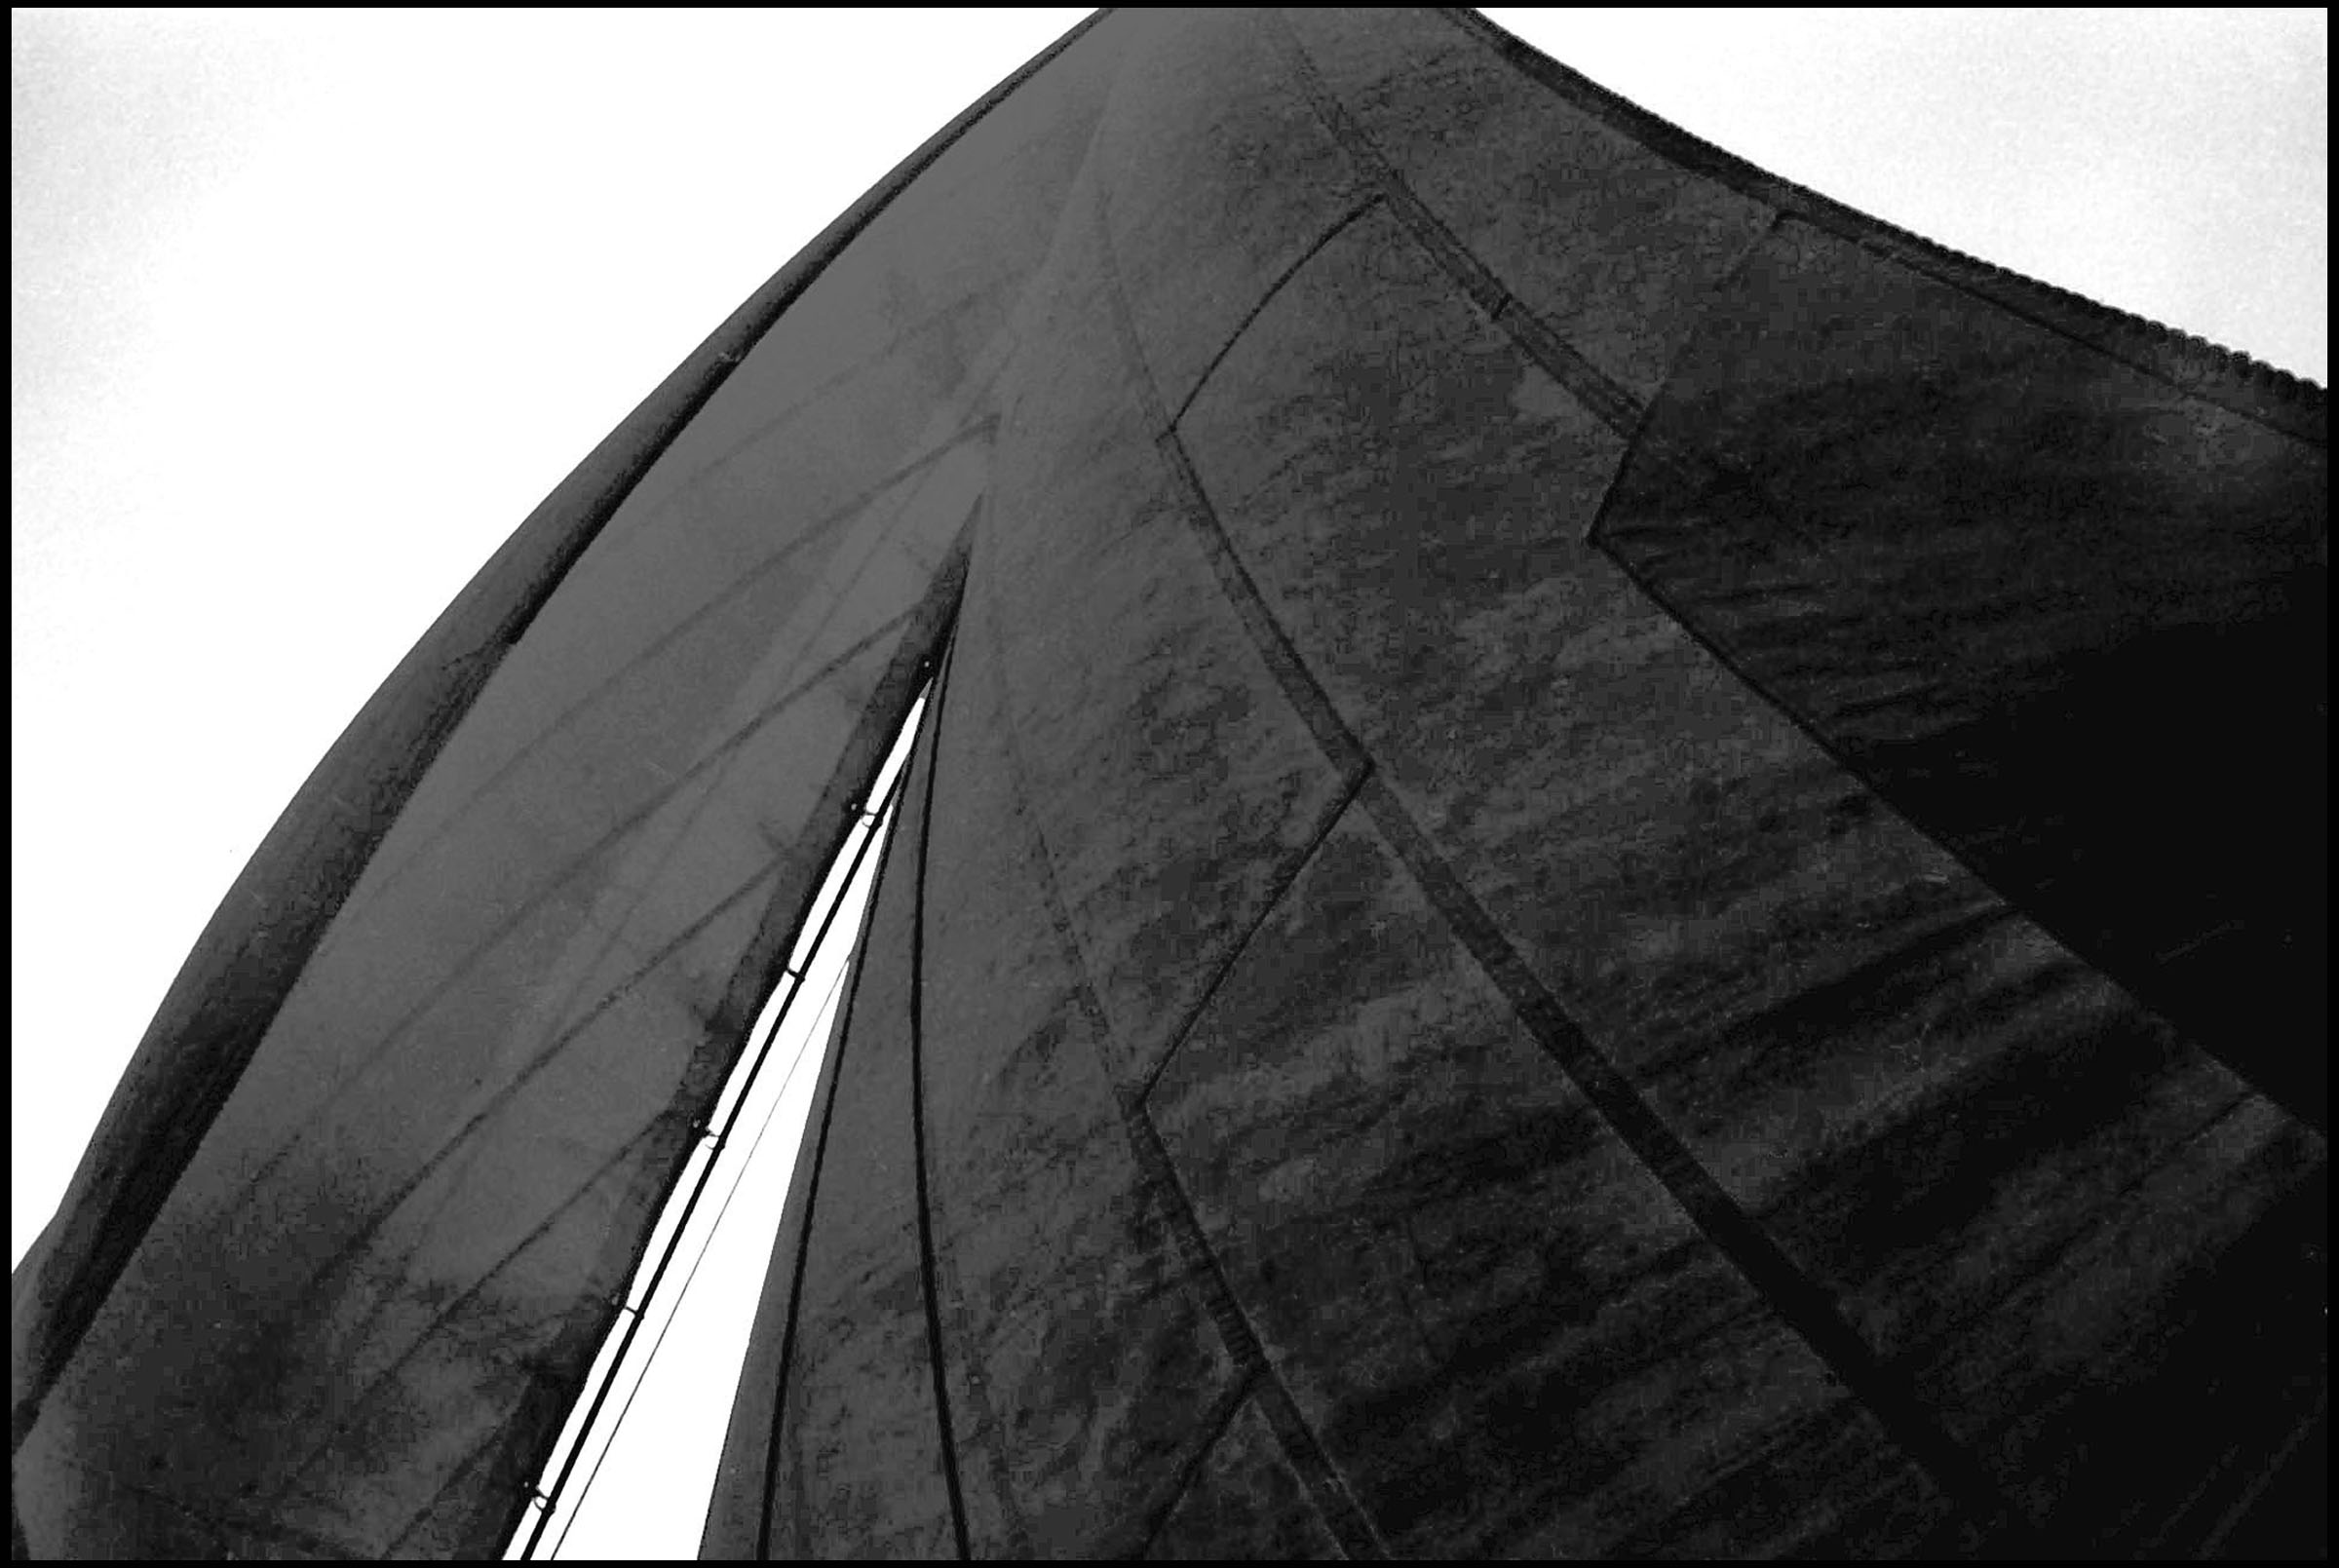 abstract view of sails